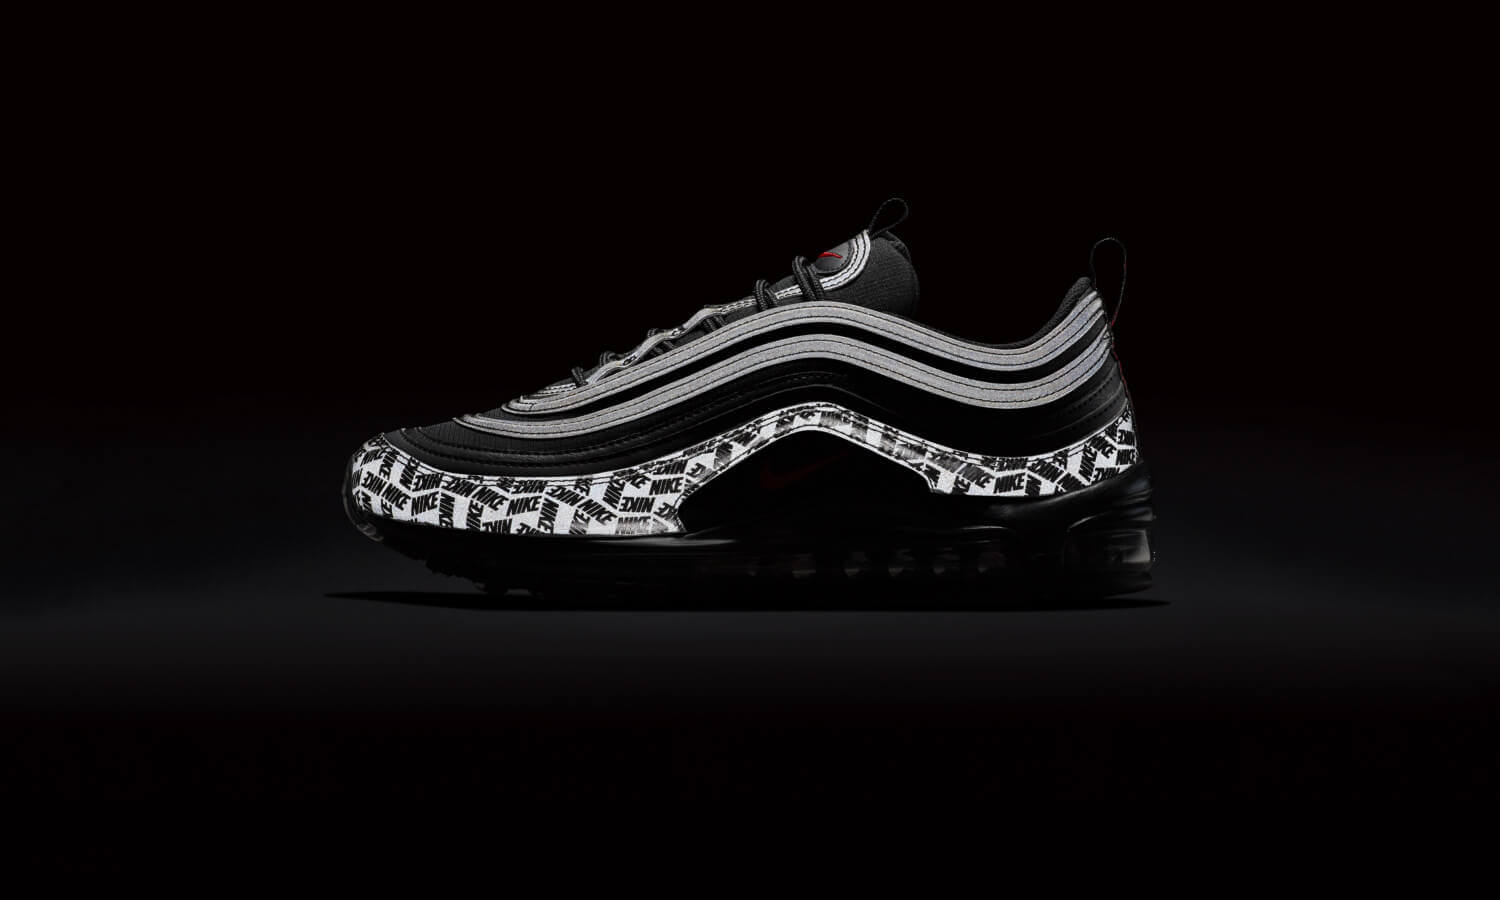 nike air max 97 schwarz university red reflective